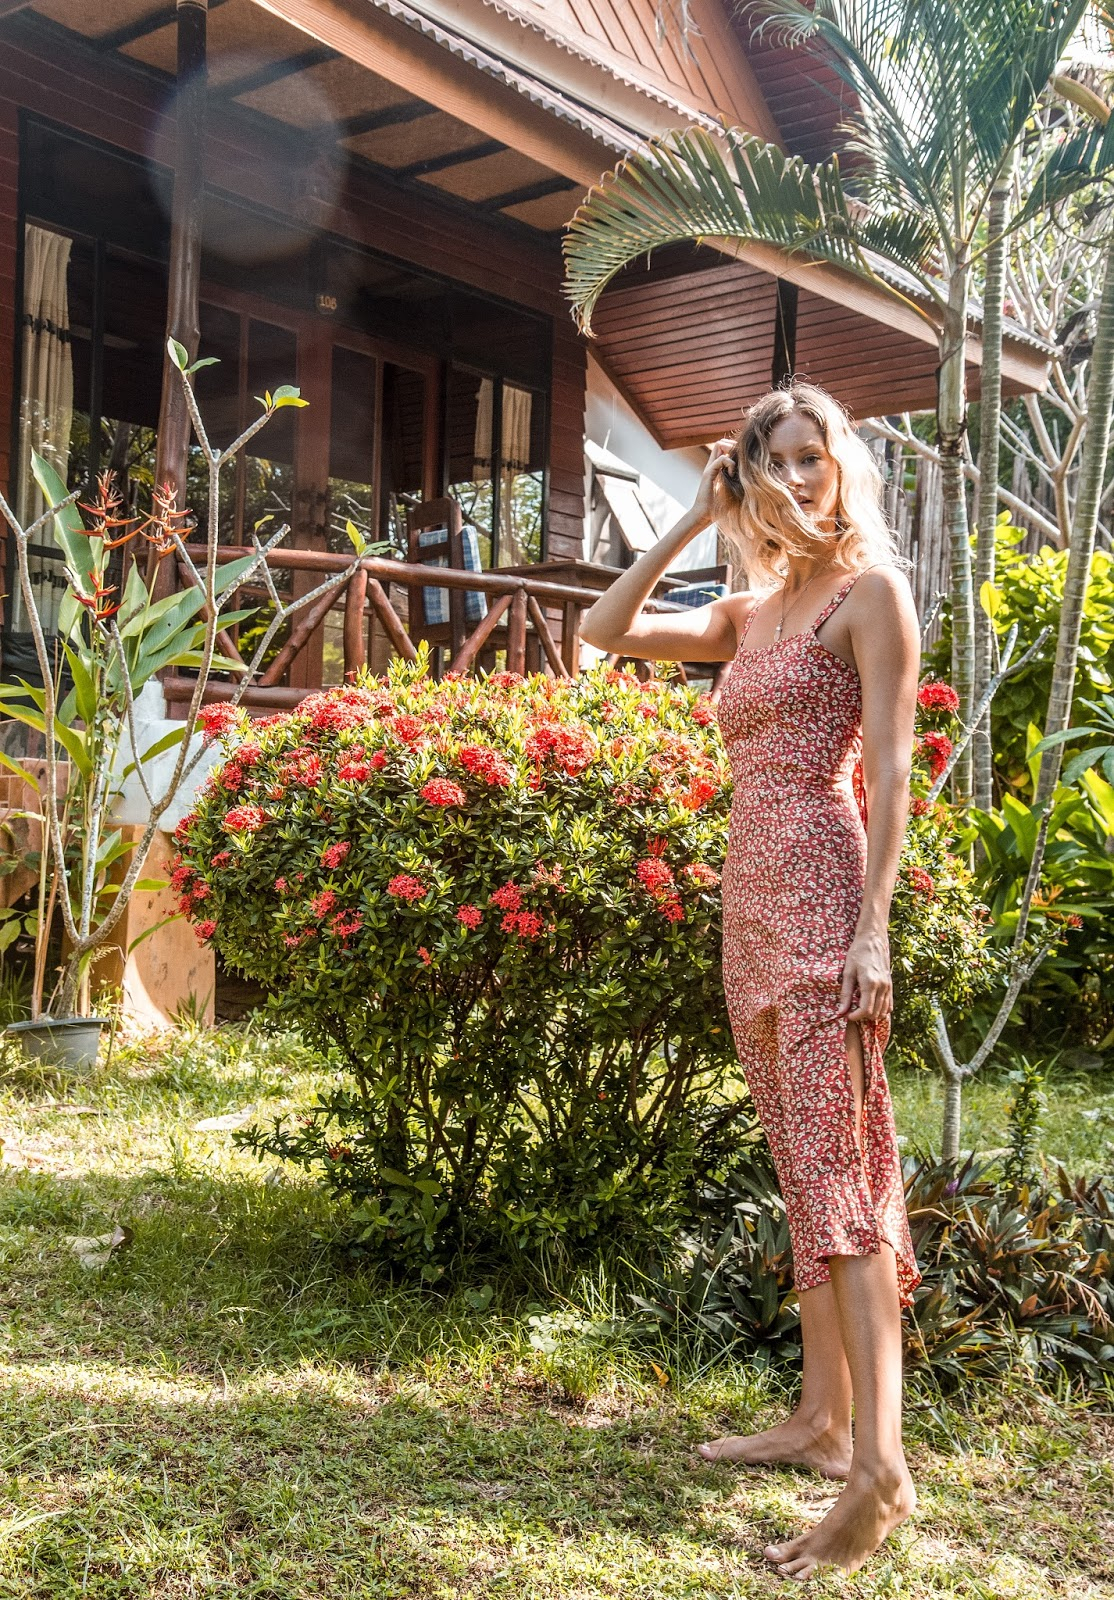 Fashion blogger, Alison Hutchinson, wears a Faithfull Katergo Midi Dress in blossom village print